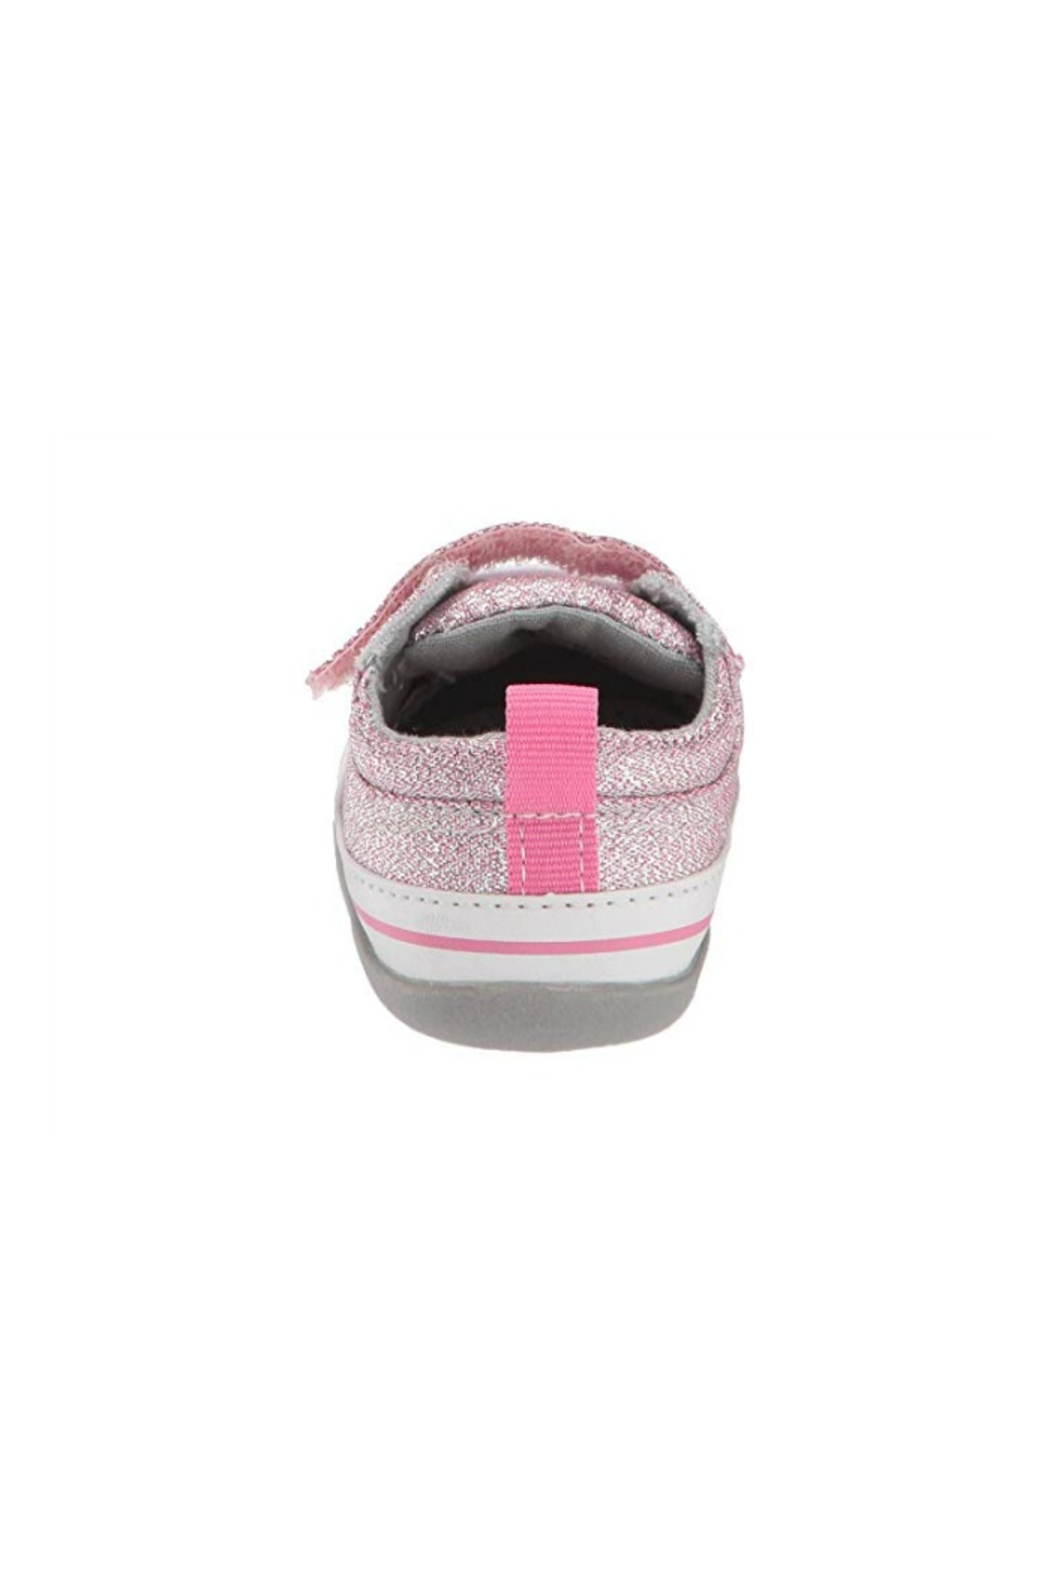 See Kai Run  Stevie II Infant in Pink Glitter - Side Cropped Image